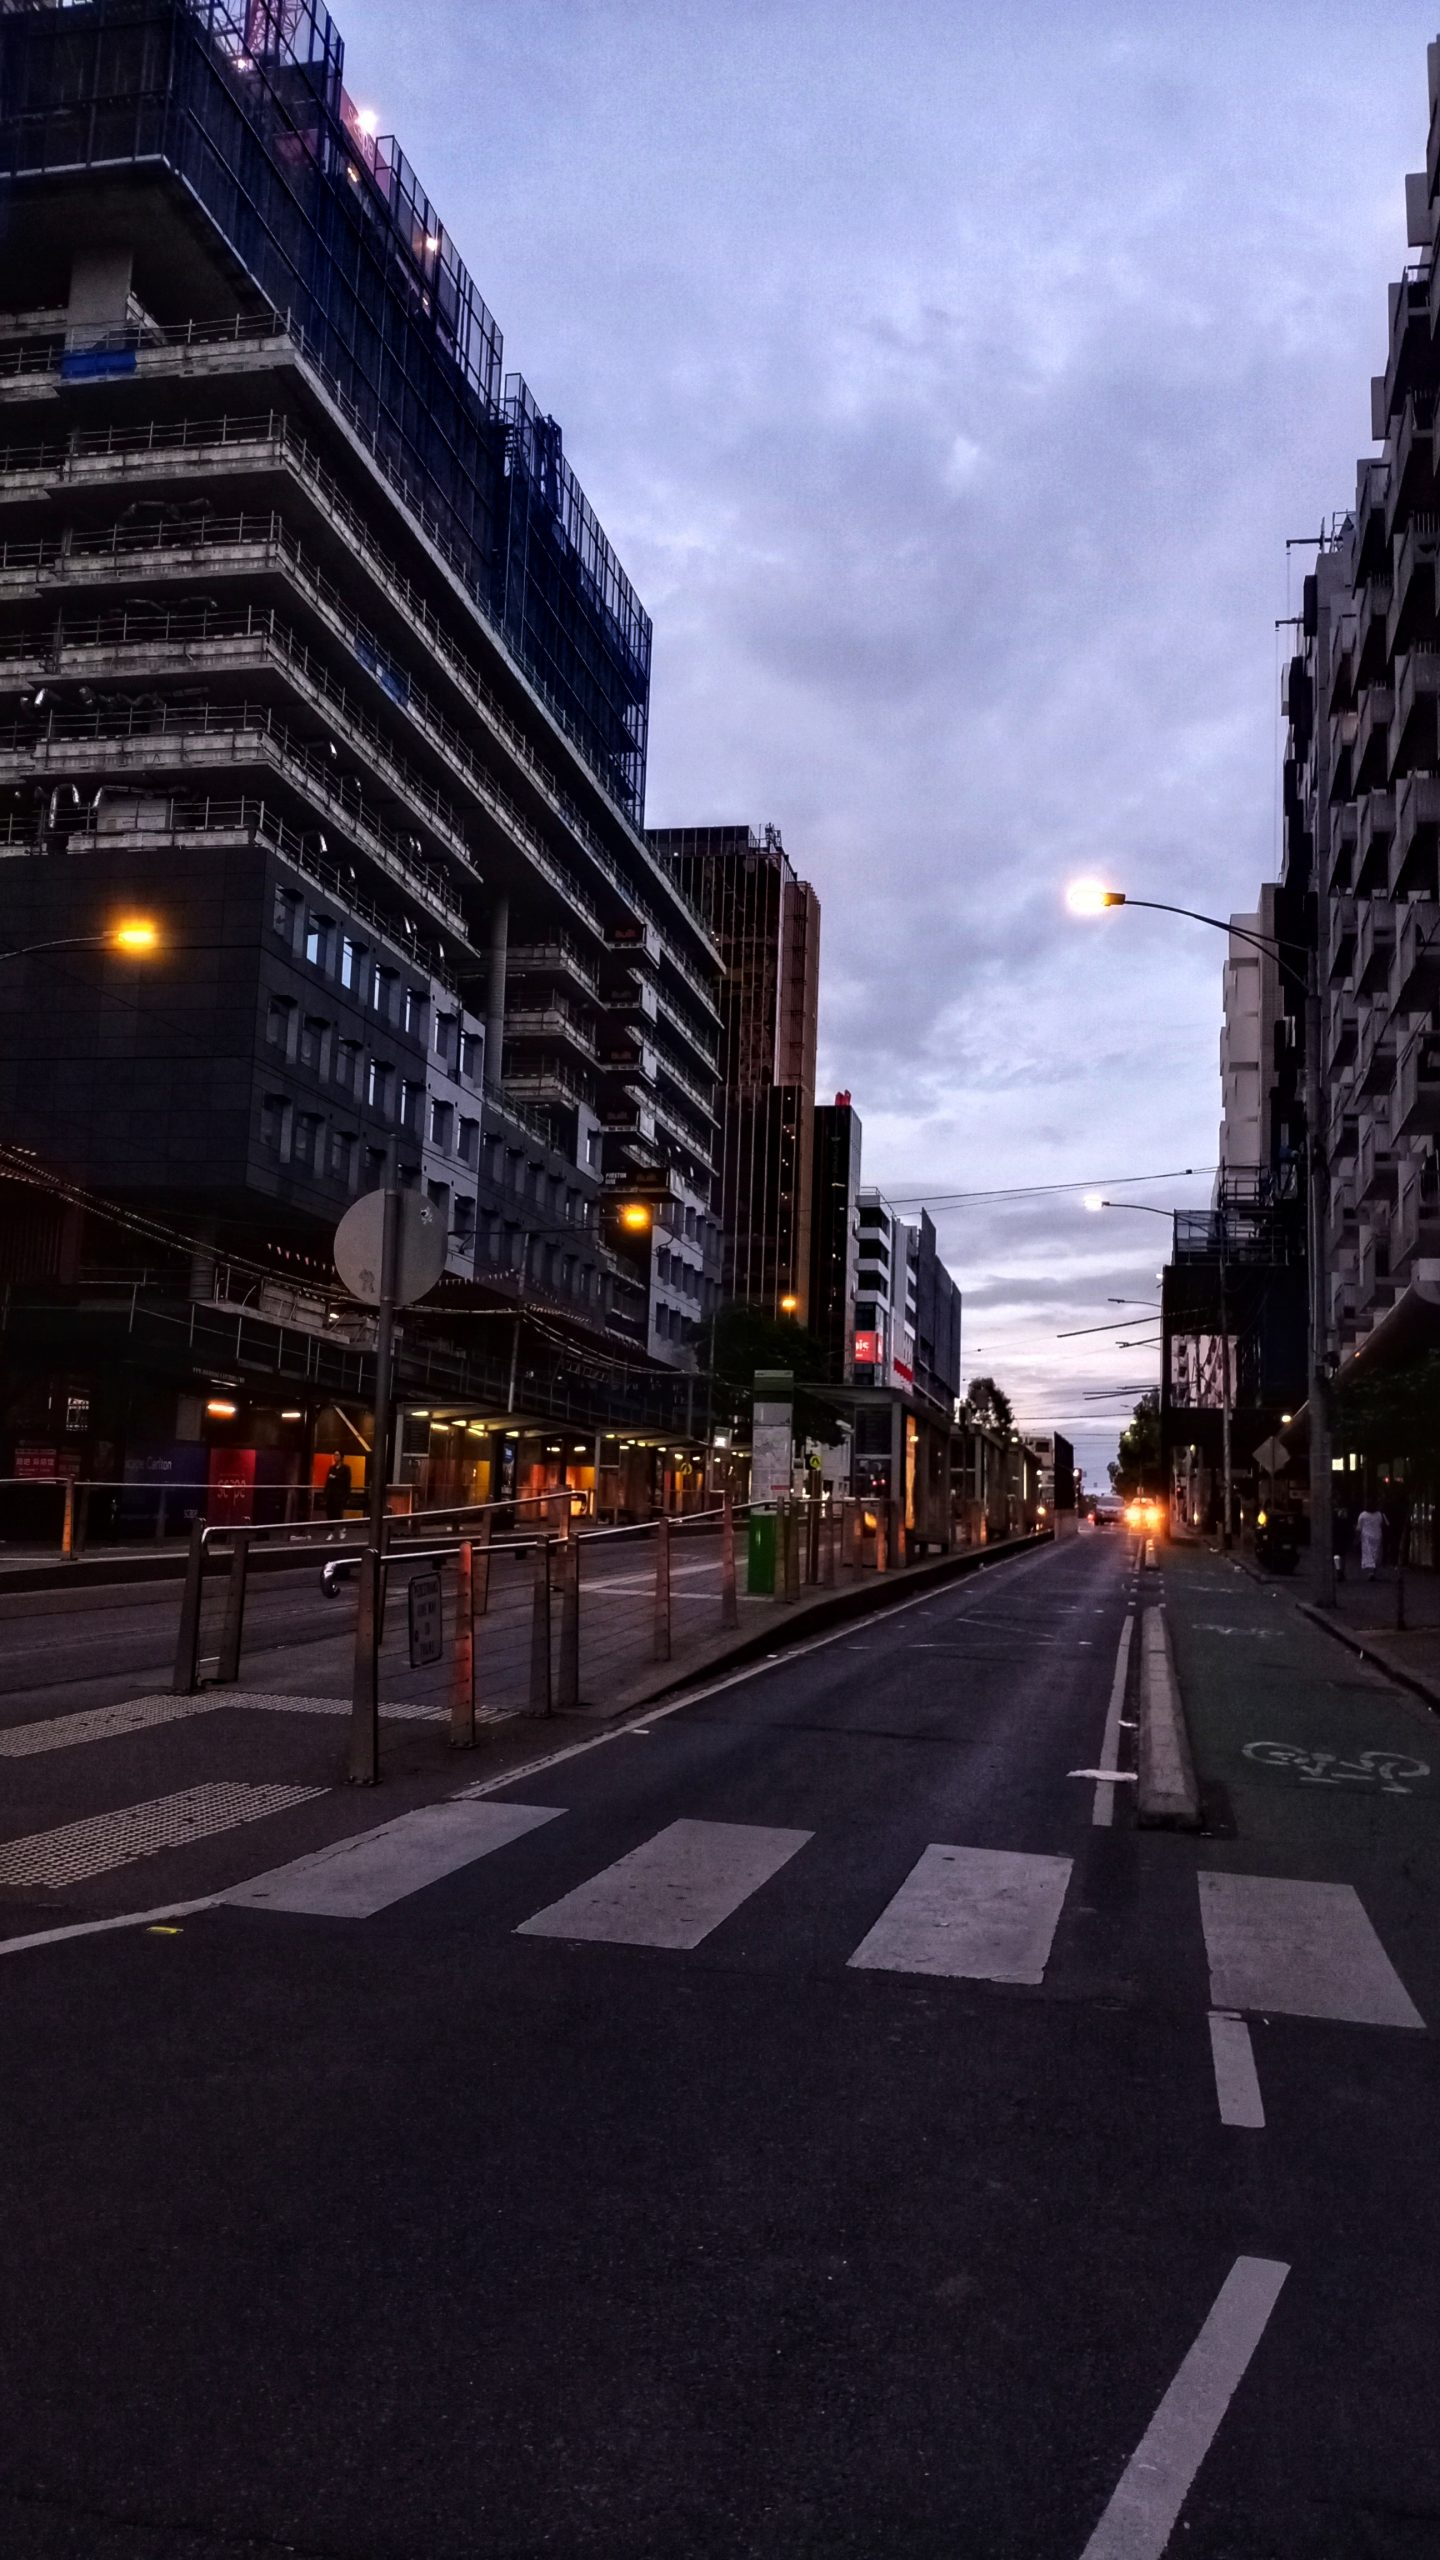 dusk in the city